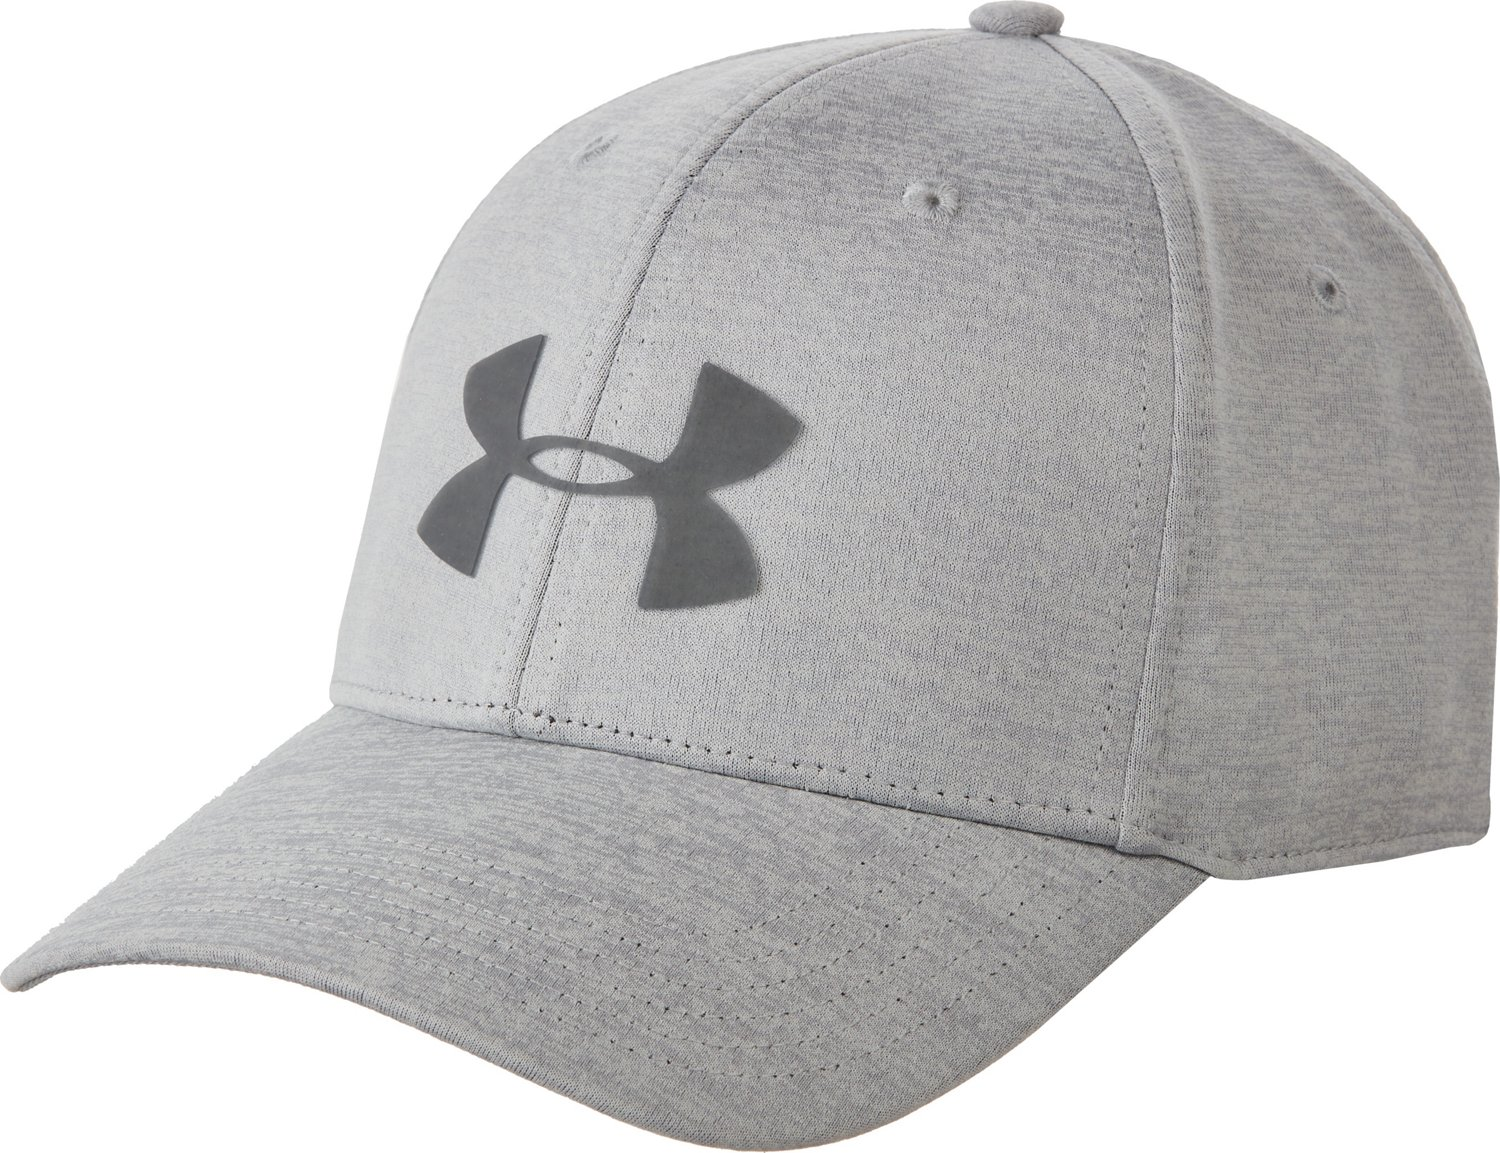 Display product reviews for Under Armour Men s Twist Closer 2 Training Cap 703c9341ce21